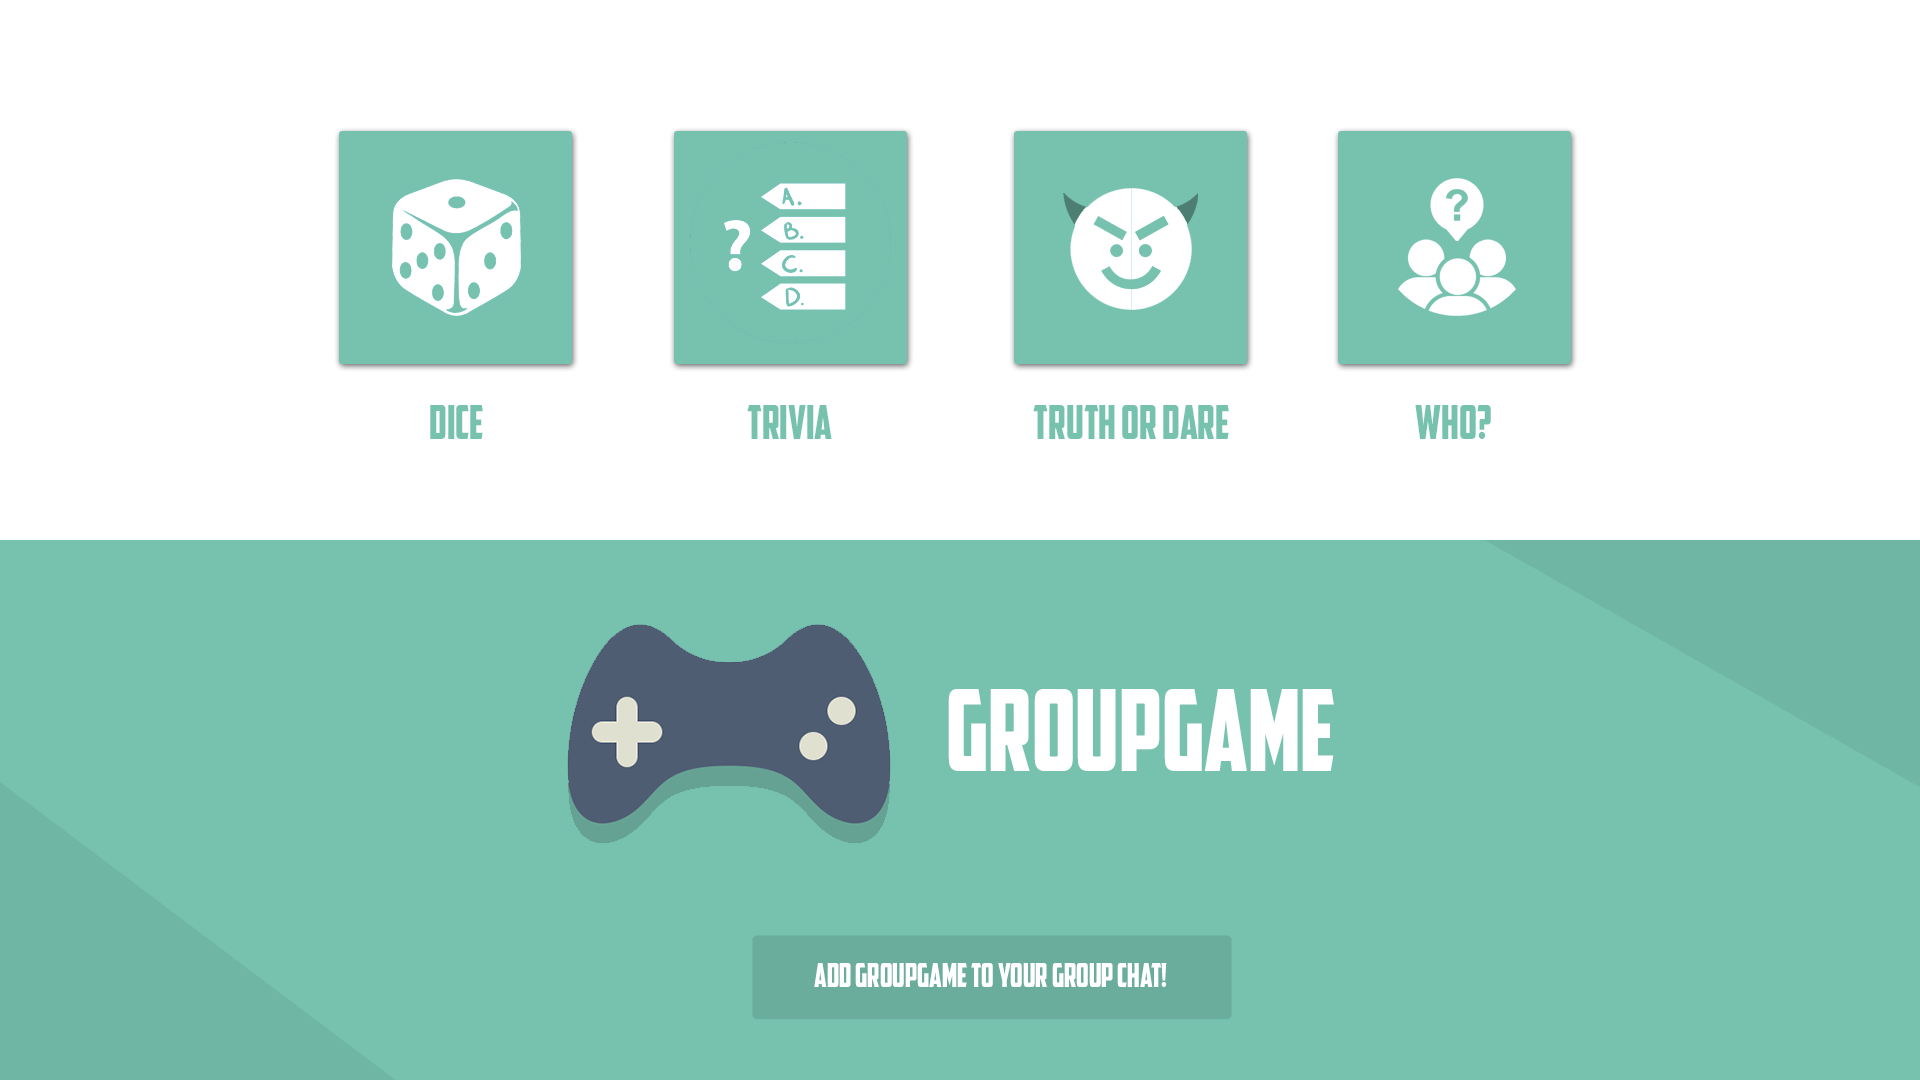 GroupGame bot for KIK Messenger